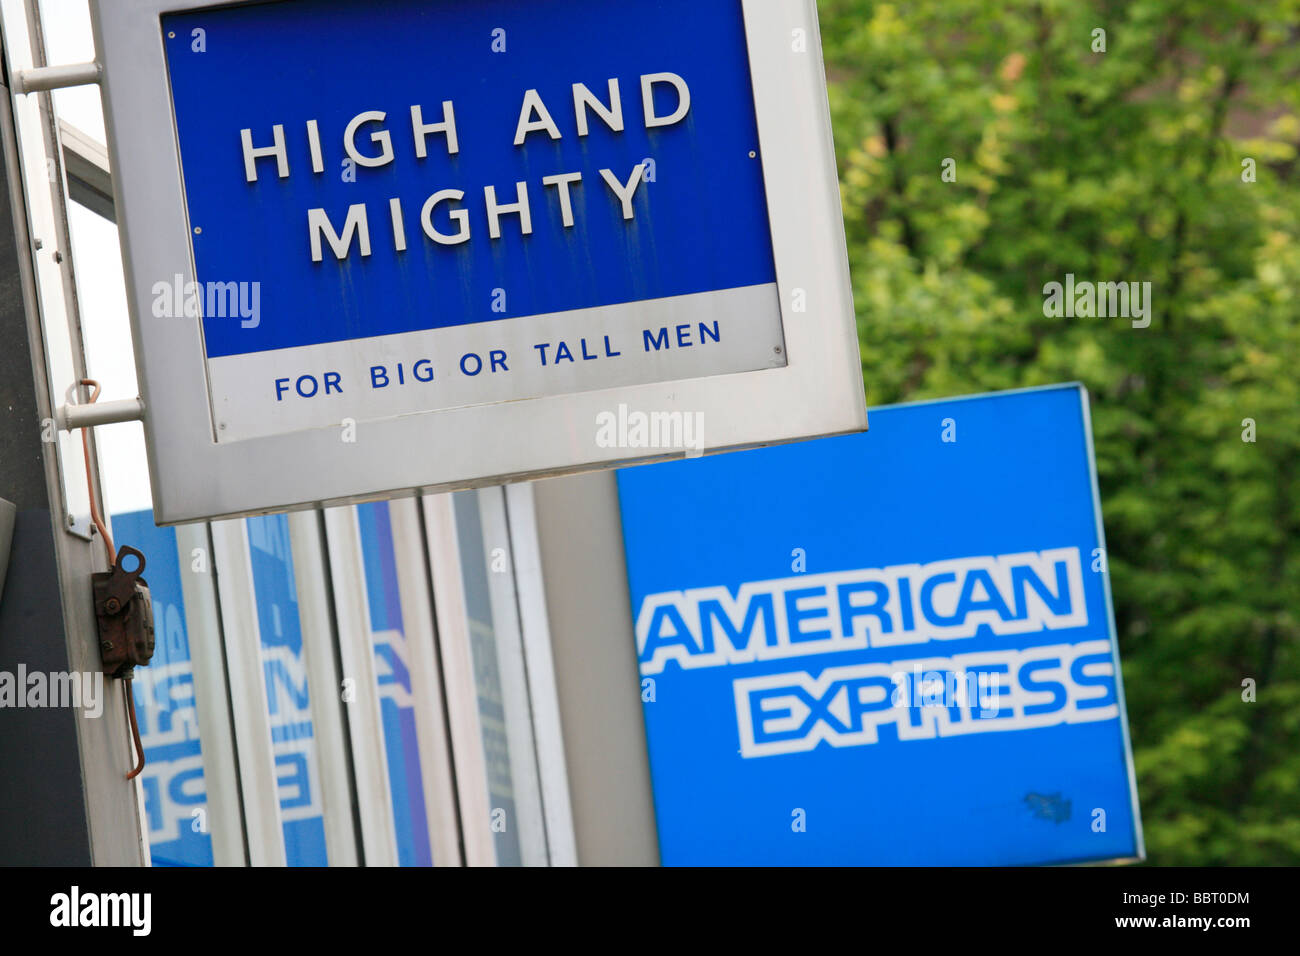 High and Mighty and American Express Logos on High Street Shops - Stock Image